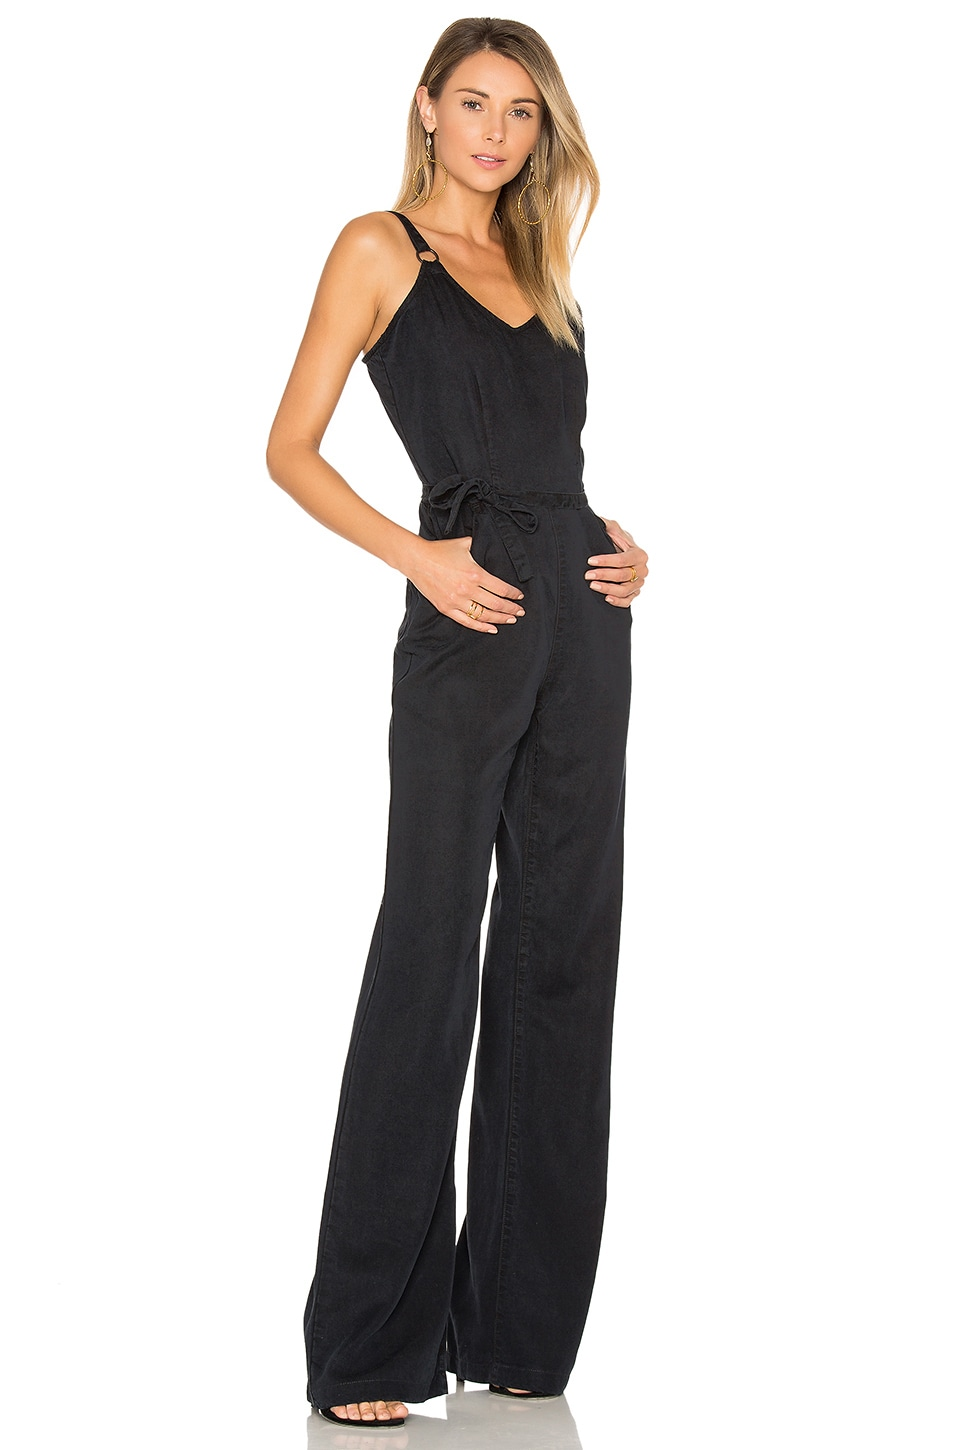 PAIGE Denim Hazelle Jumpsuit in Black Pearl